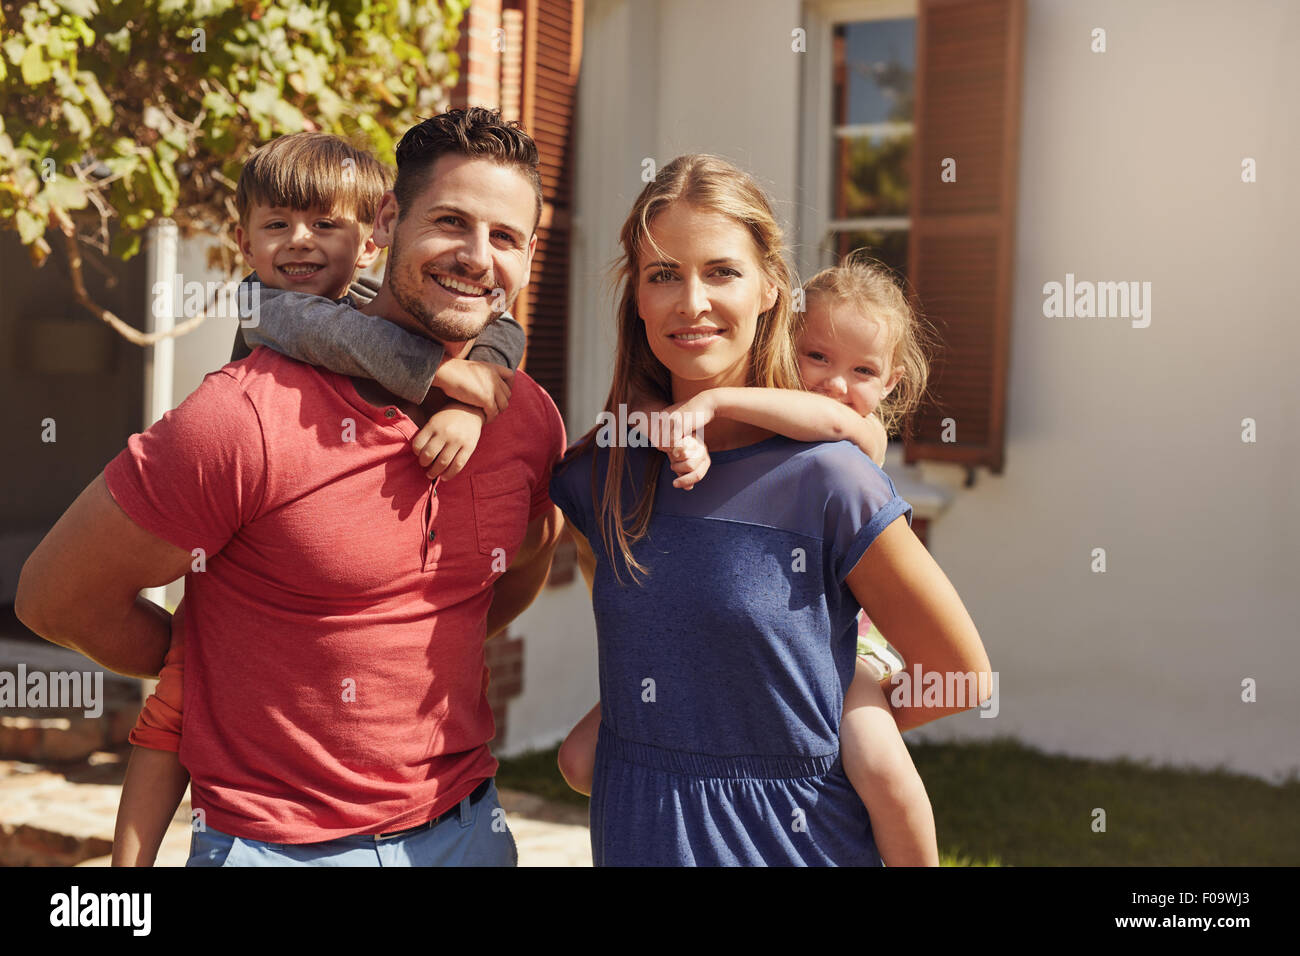 Outdoor shot of a happy couple carrying their children on their backs. Portrait of a mother and father giving their - Stock Image